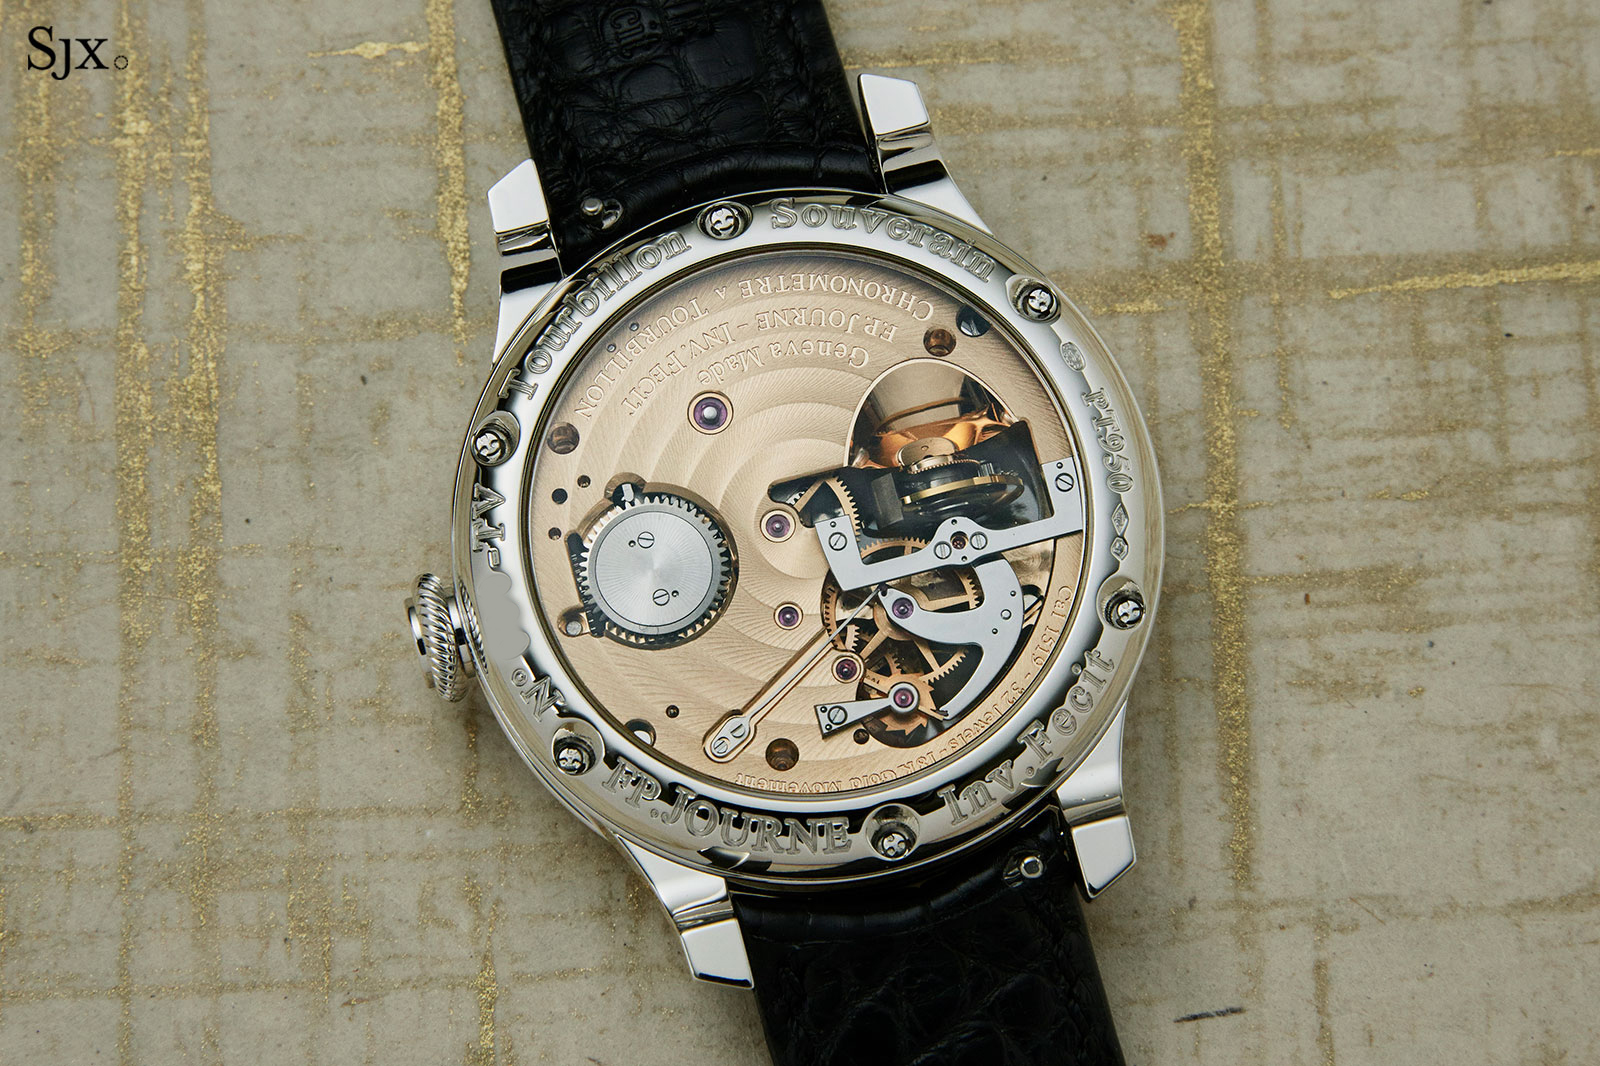 FP Journe Tourbillon Souverain Vertical Pt 2-1